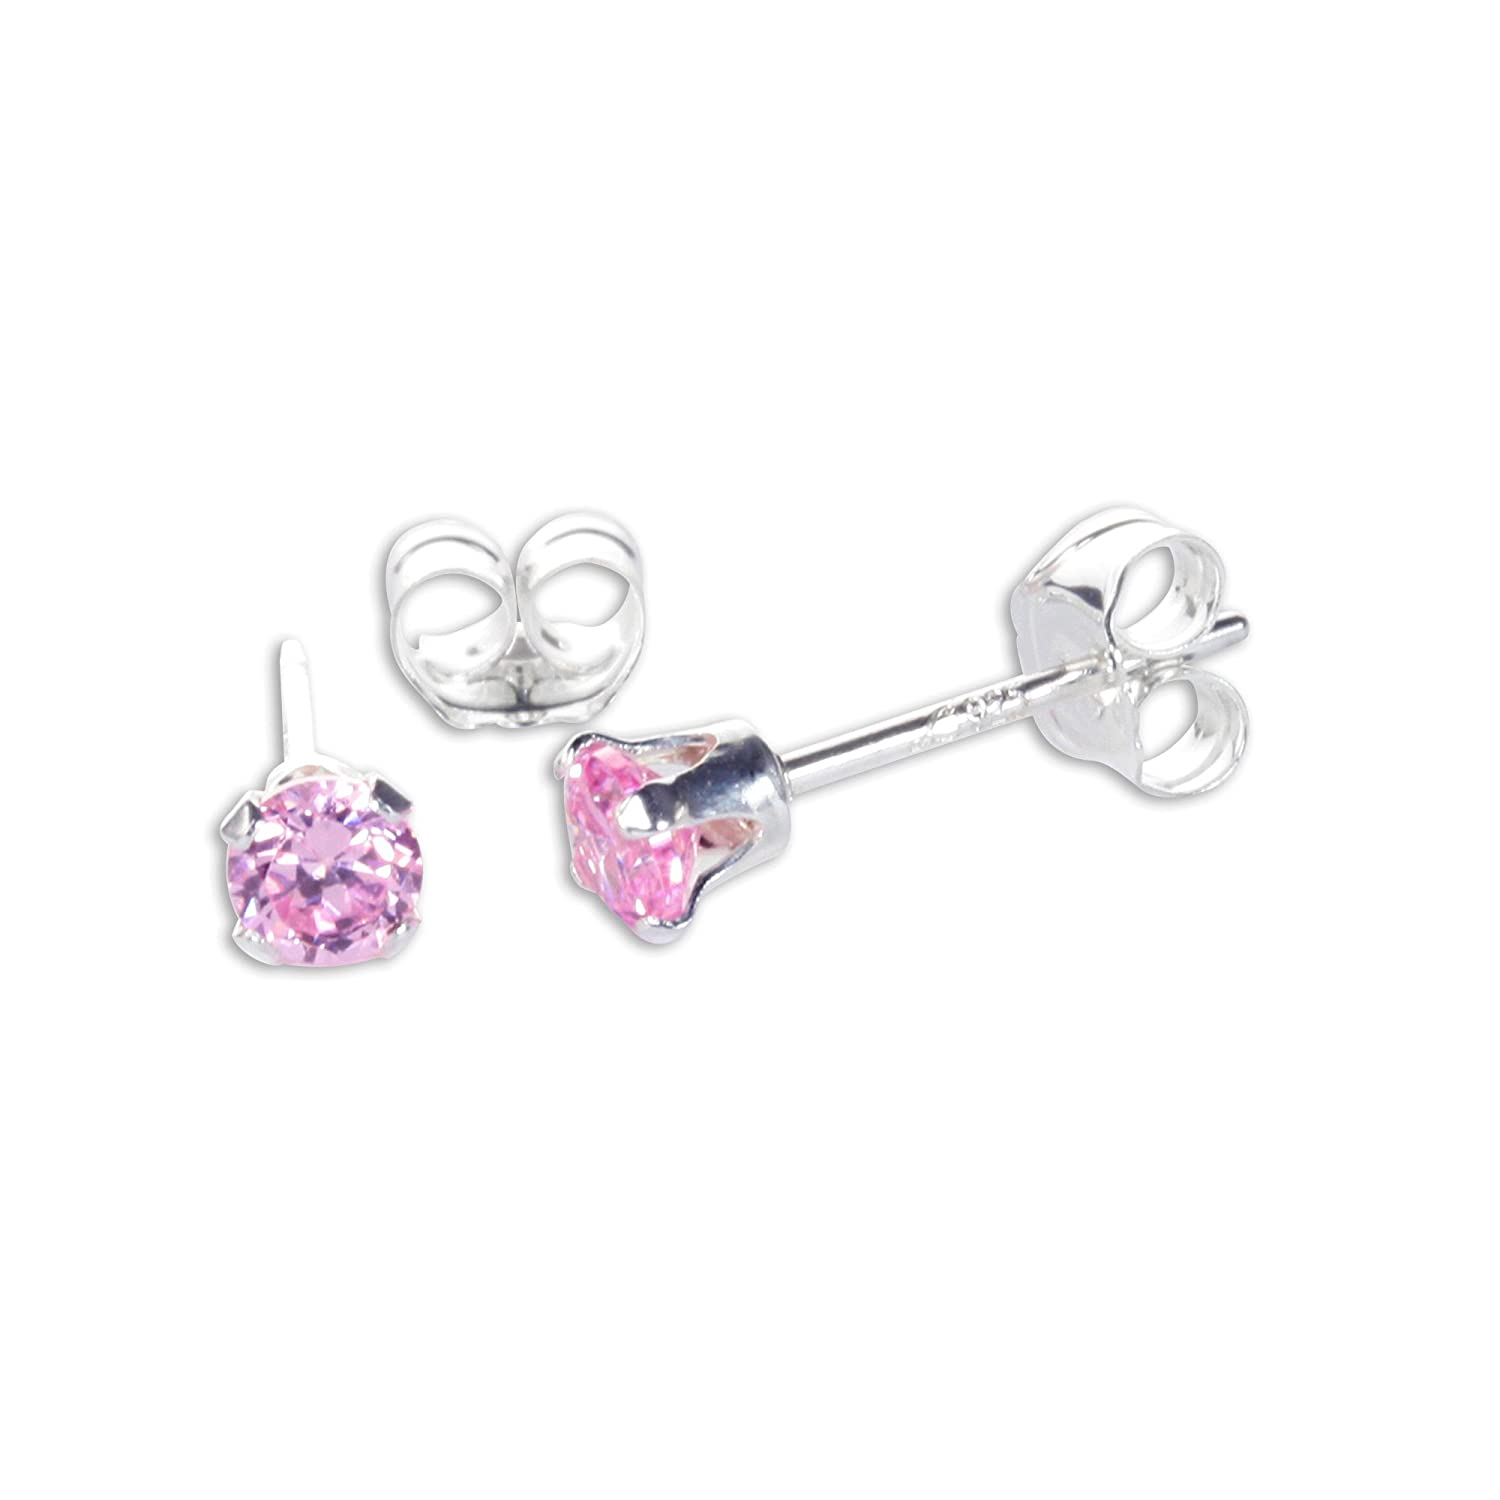 Sterling Silver 3mm Round Crystal Cubic Zirconia CZ Stud Earrings | 13 Colours | Birthstones JewelleryBox CRSTUD-038-GG